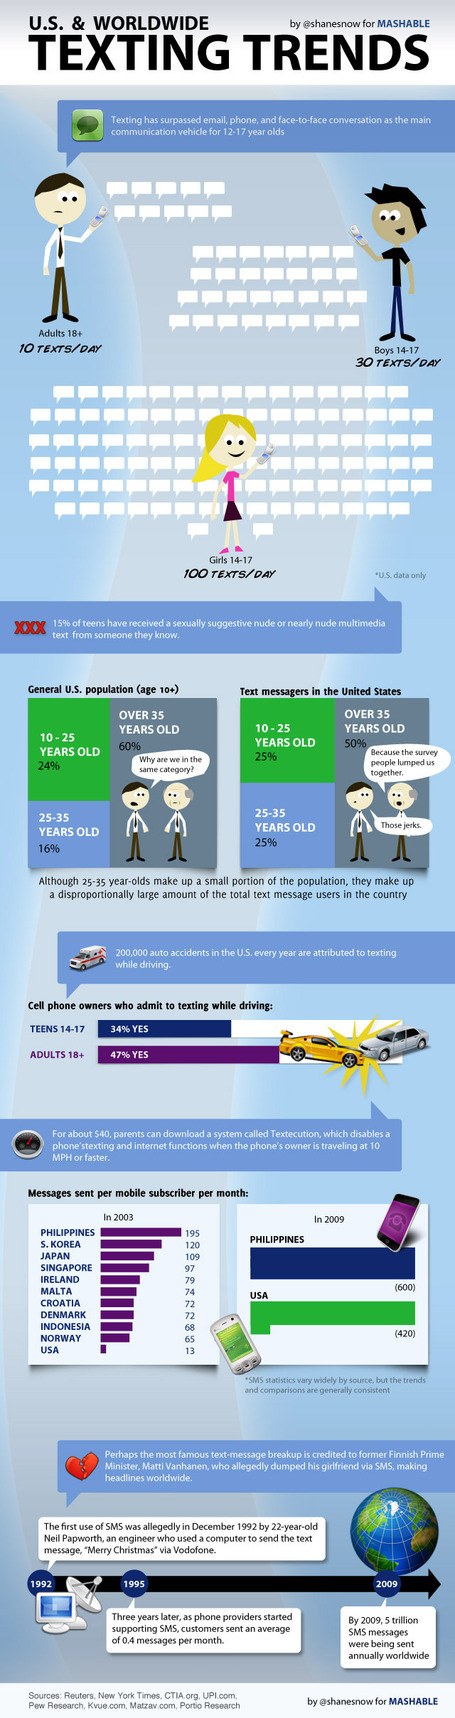 US & Worldwide Texting Trends (infographic) | Kevin I Mills | Scoop.it